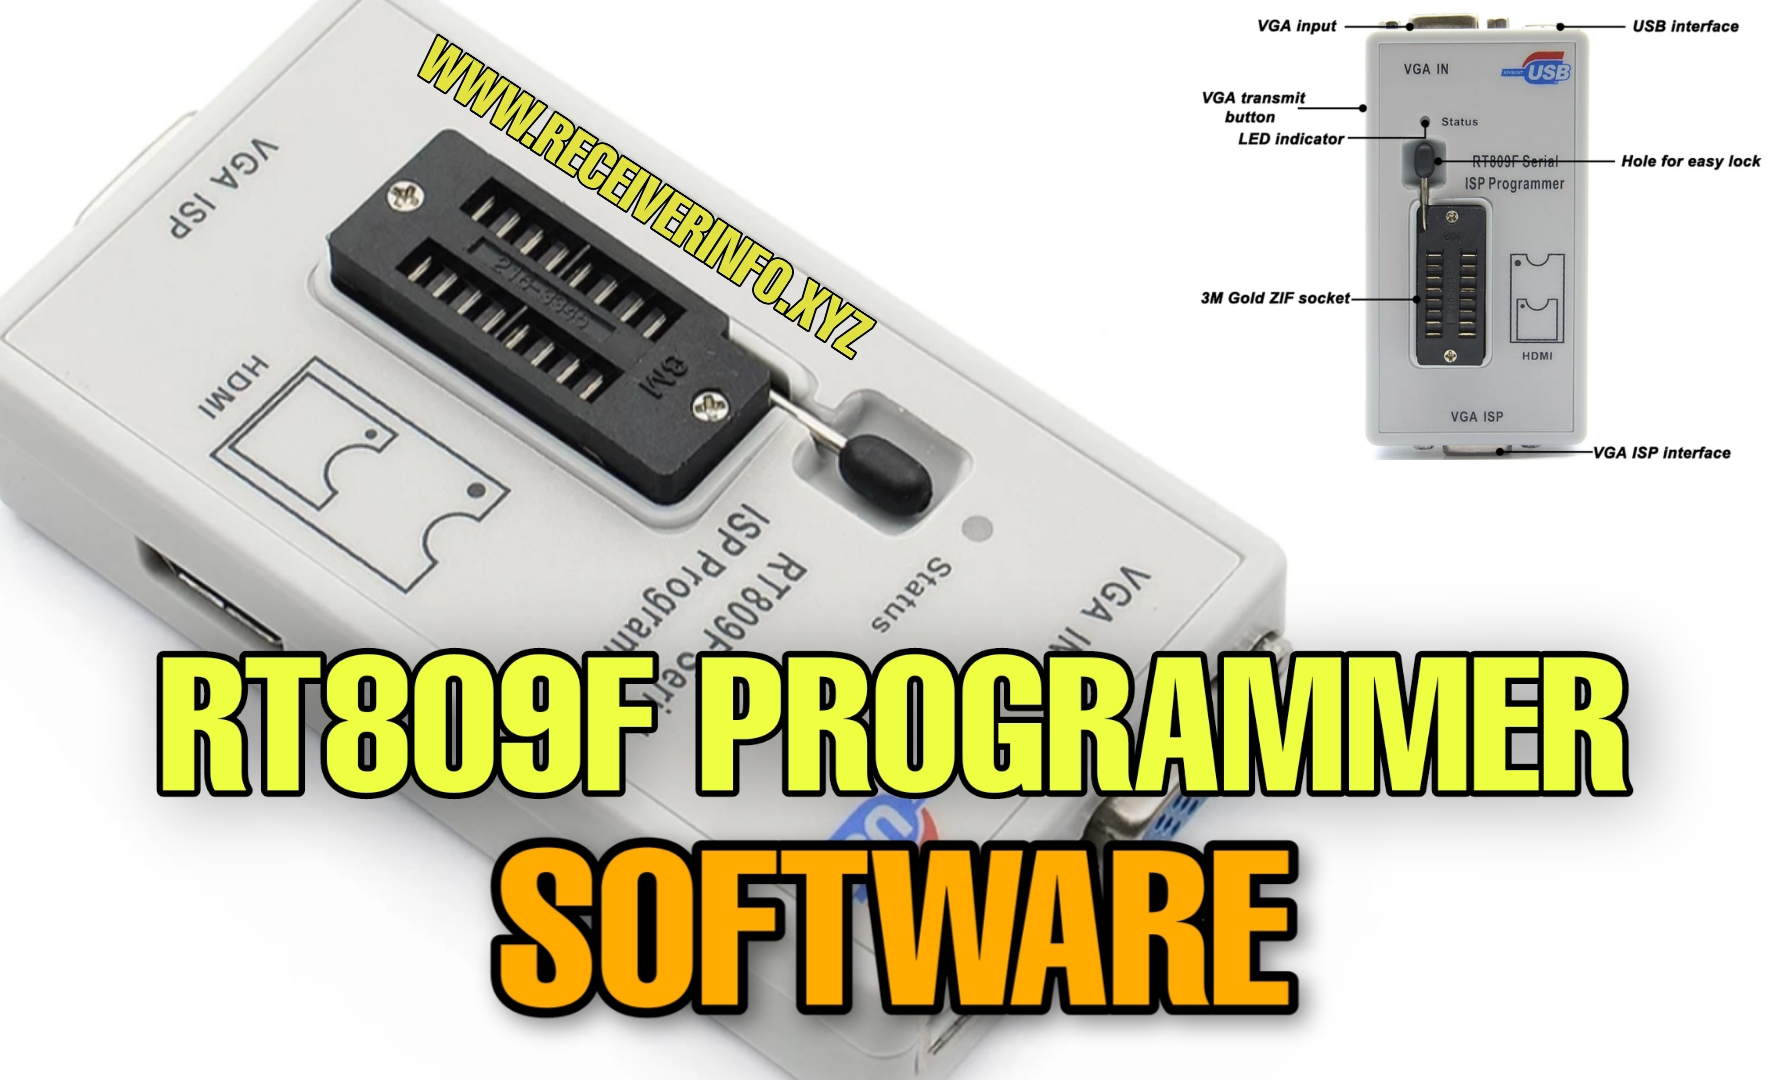 RT809T PROGRAMMER SOFTWARE FREE DOWNLOAD